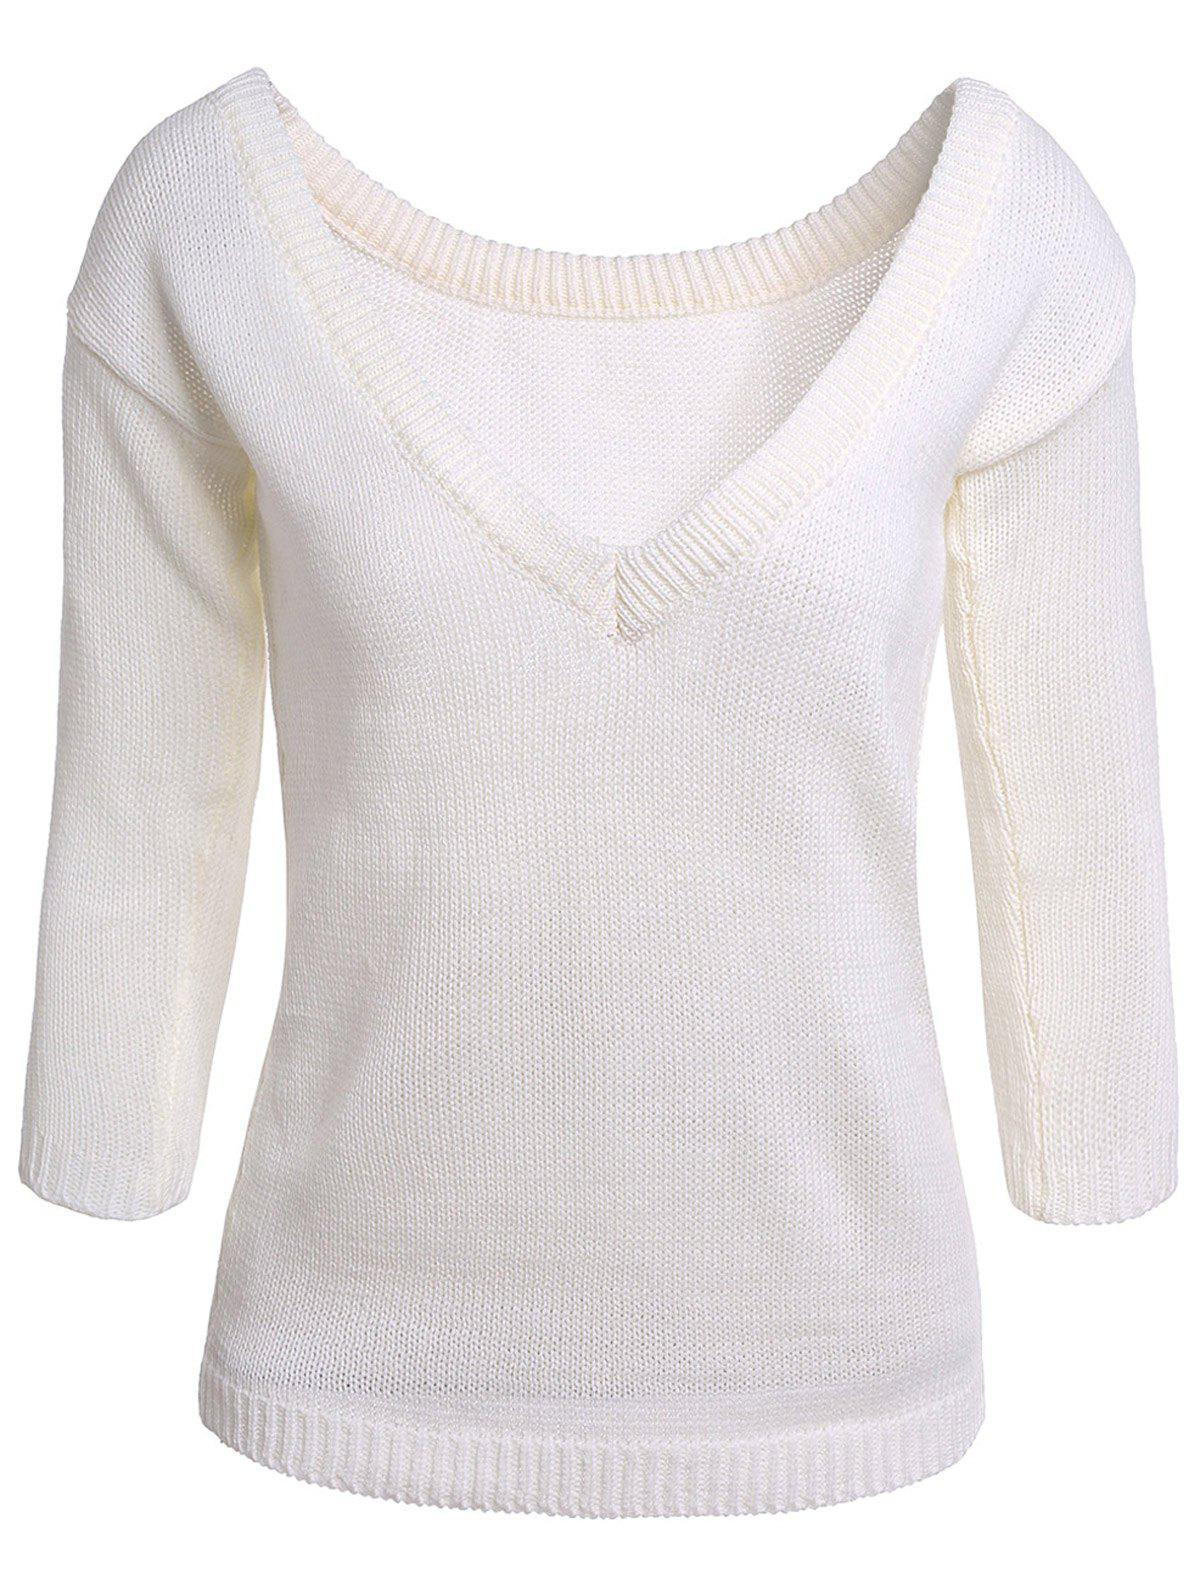 Sexy White Skew Collar Open Back Long Sleeve Sweater For WomenWomen<br><br><br>Size: ONE SIZE(FIT SIZE XS TO M)<br>Color: WHITE